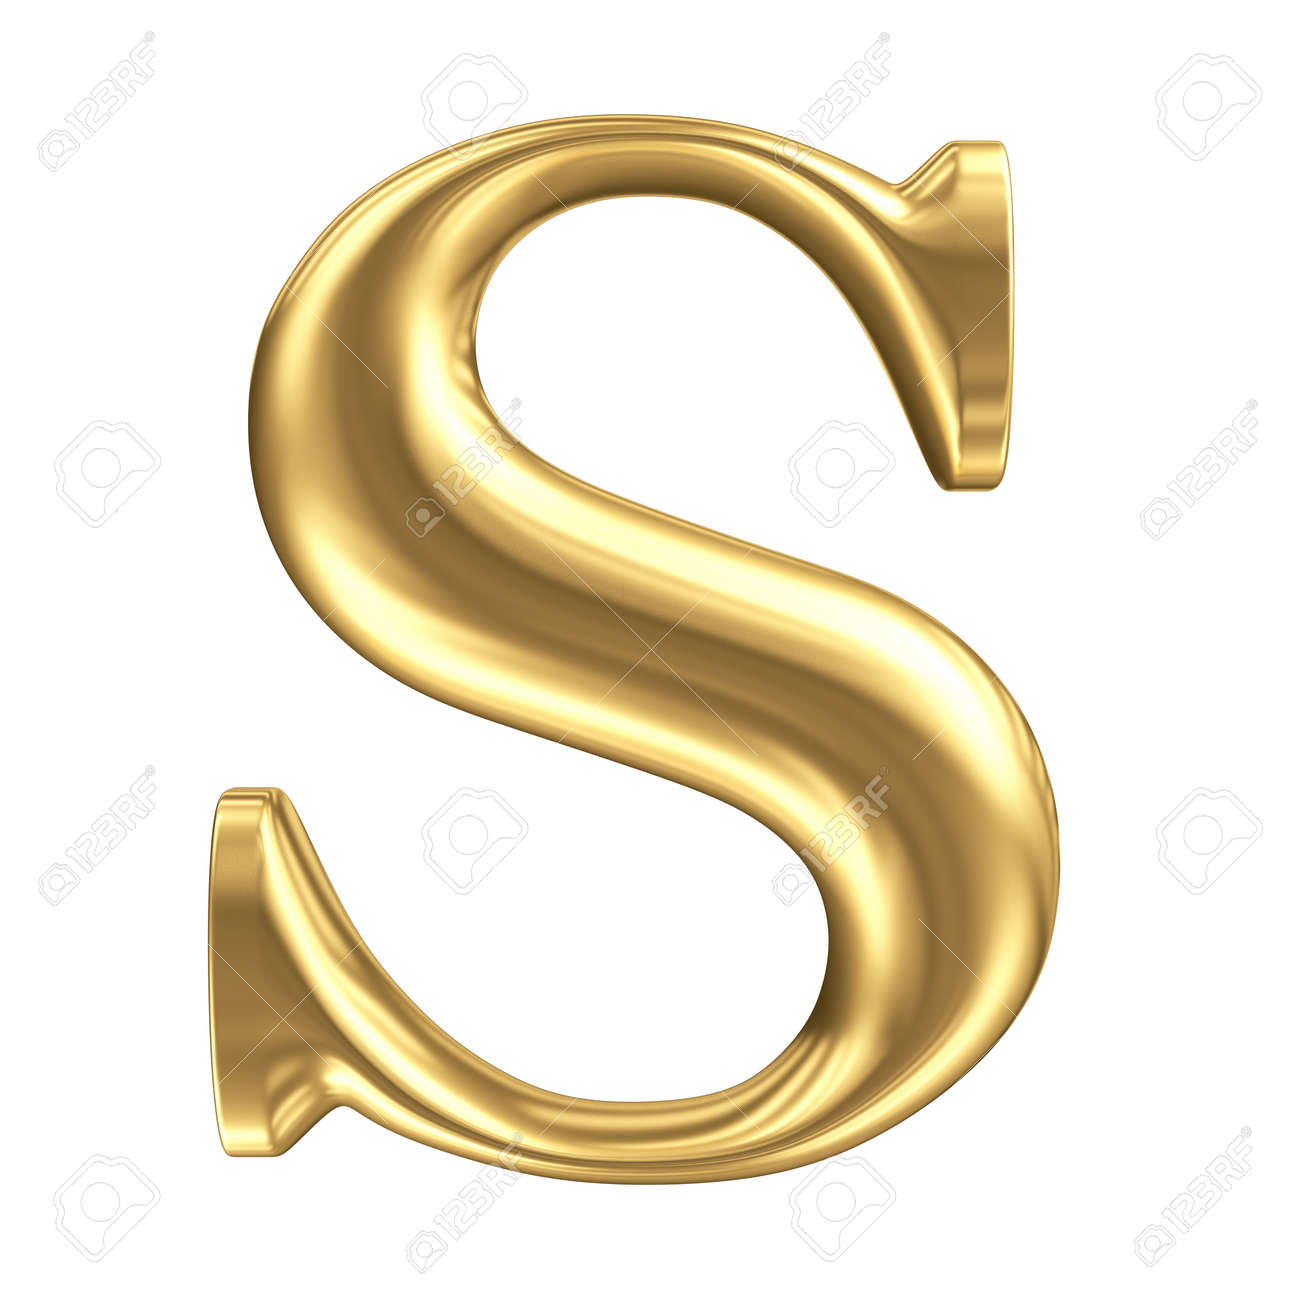 Golden Matt Letter S Jewellery Font Collection Stock Photo Picture